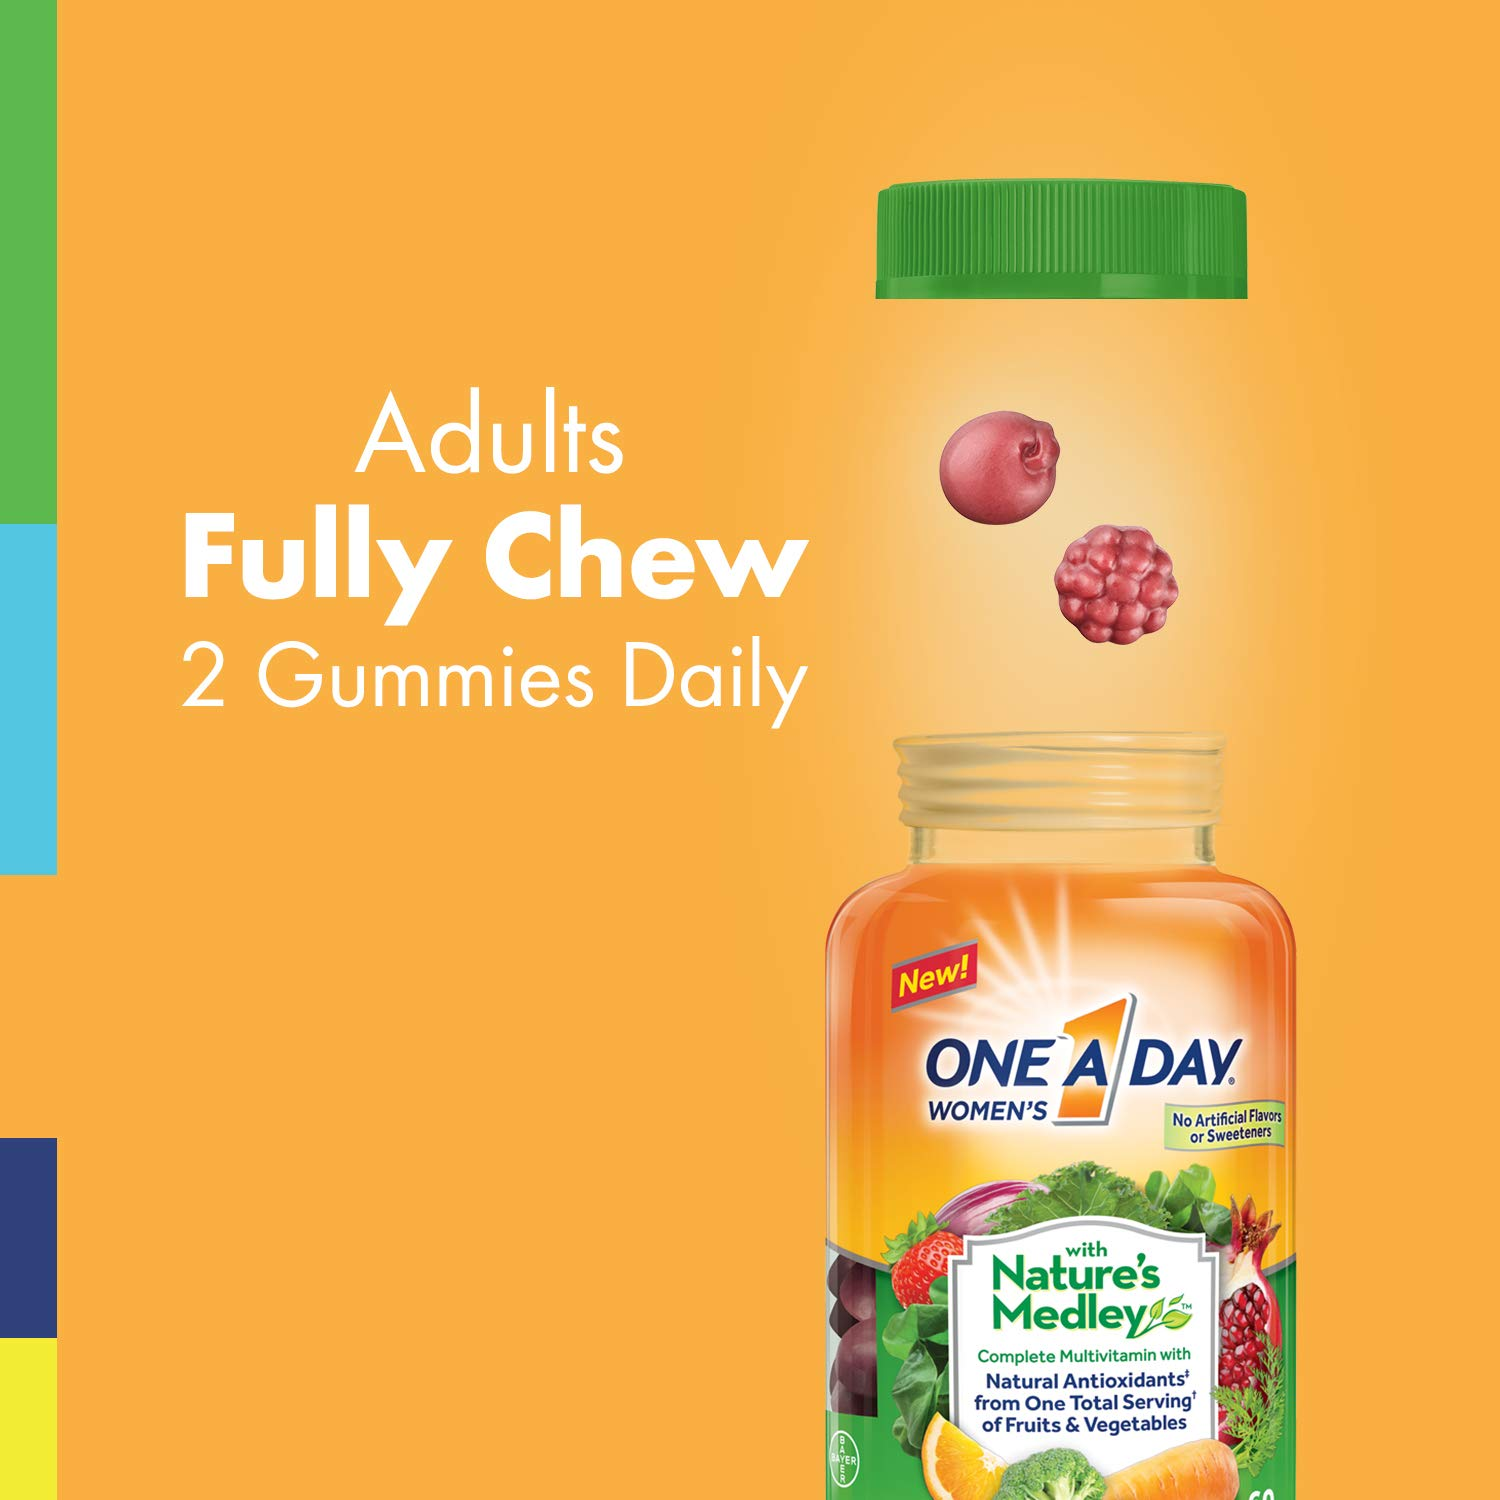 Amazon.com: One A Day Womens with Natures Medley Complete Multivitamin Supplement Gummies, 60 Count: Health & Personal Care